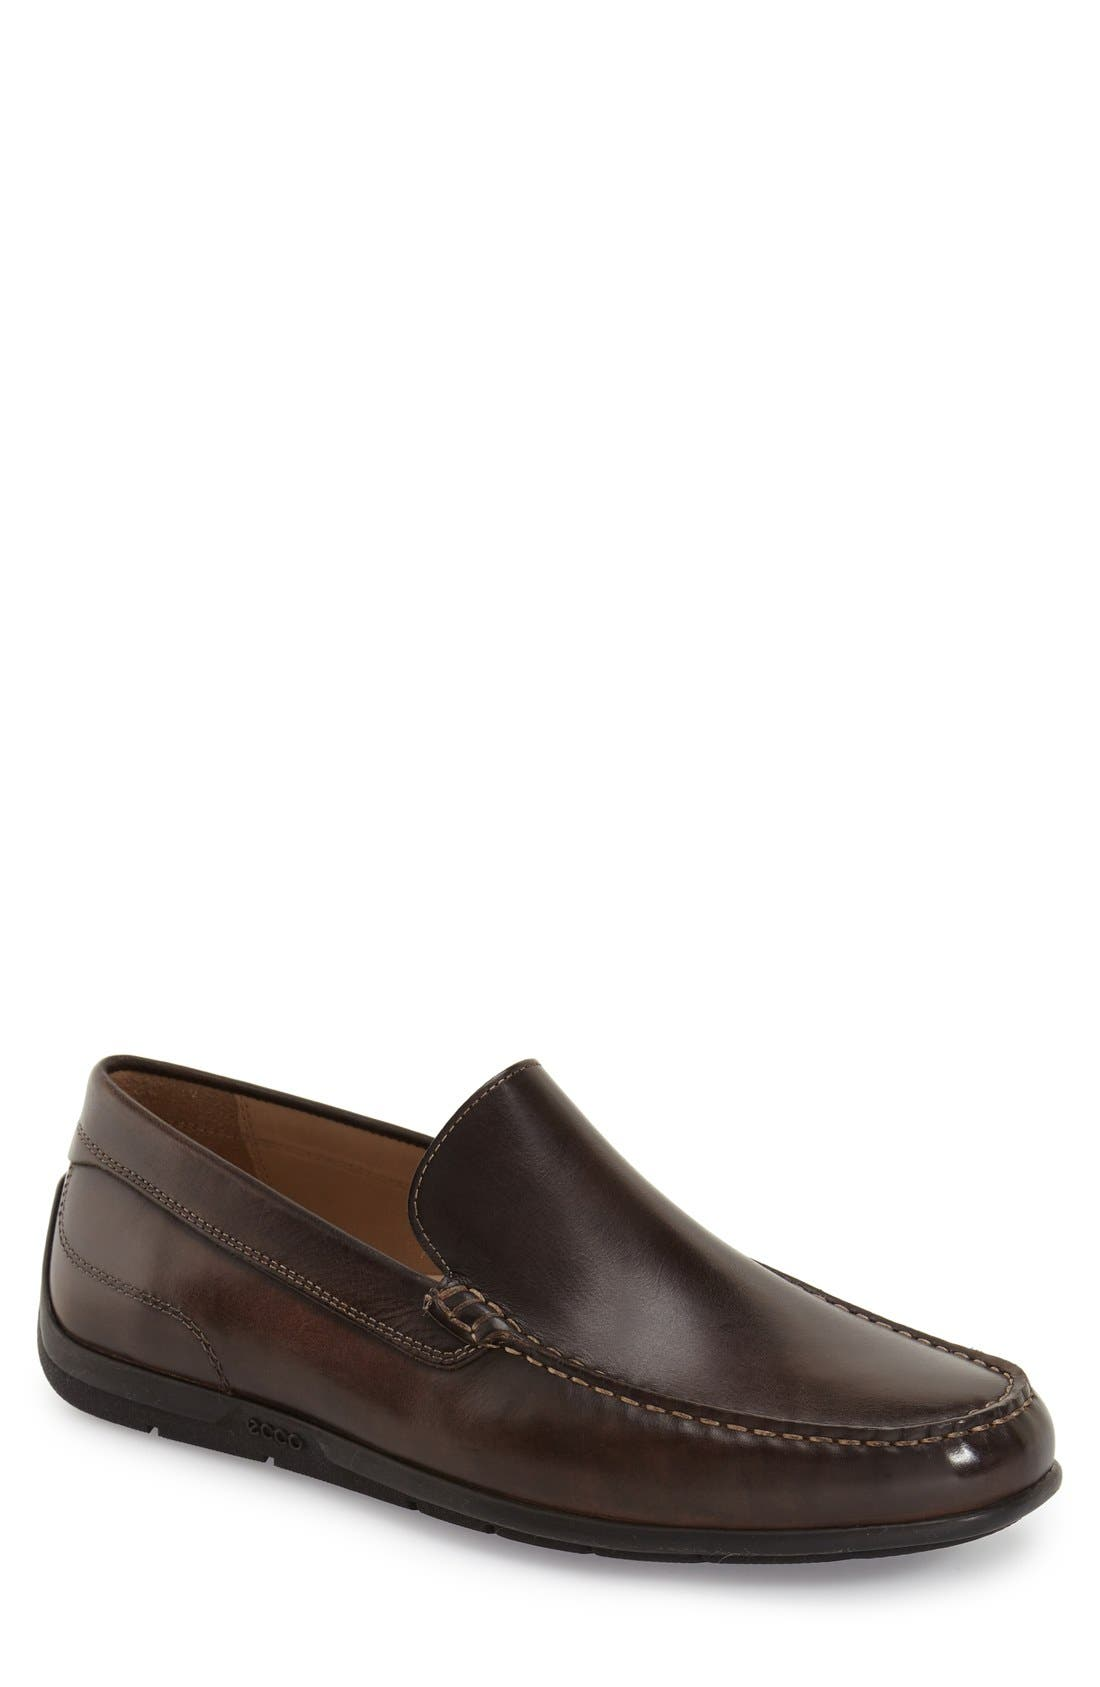 'Classic Moc II' Venetian Loafer,                             Main thumbnail 1, color,                             Coffee Leather